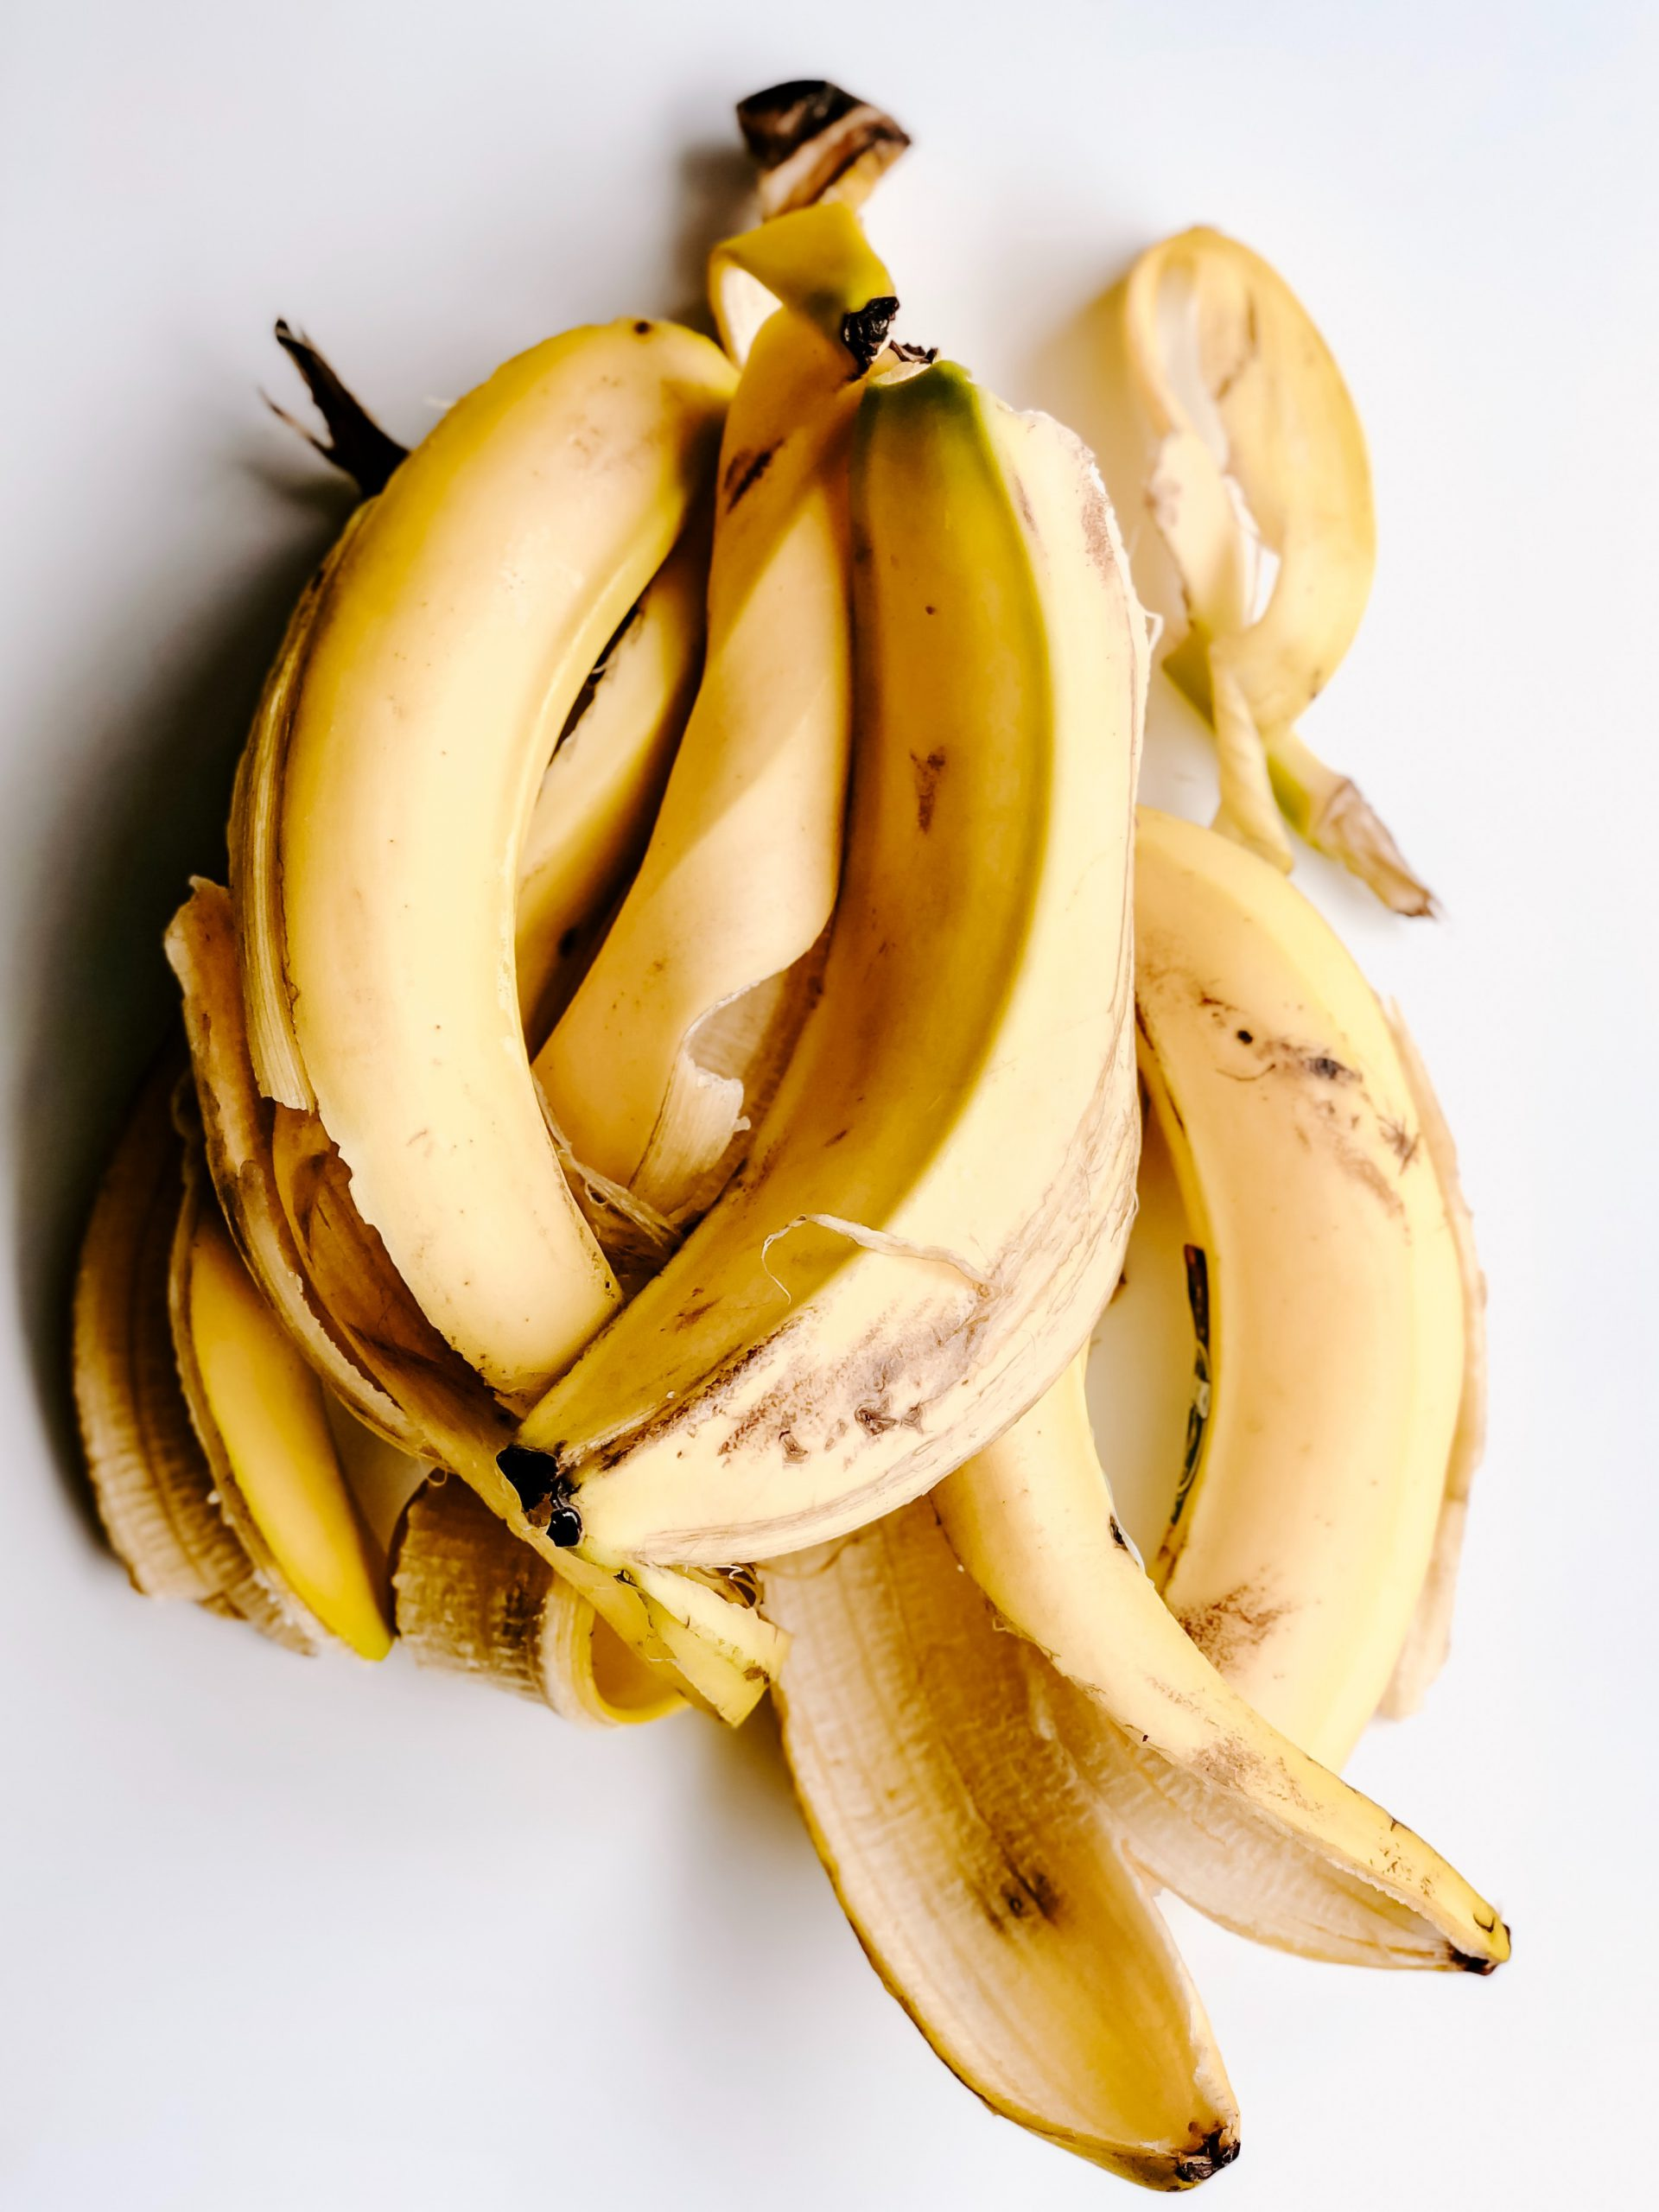 Do you want to avoid wrinkles and skin ageing? Try using banana peels